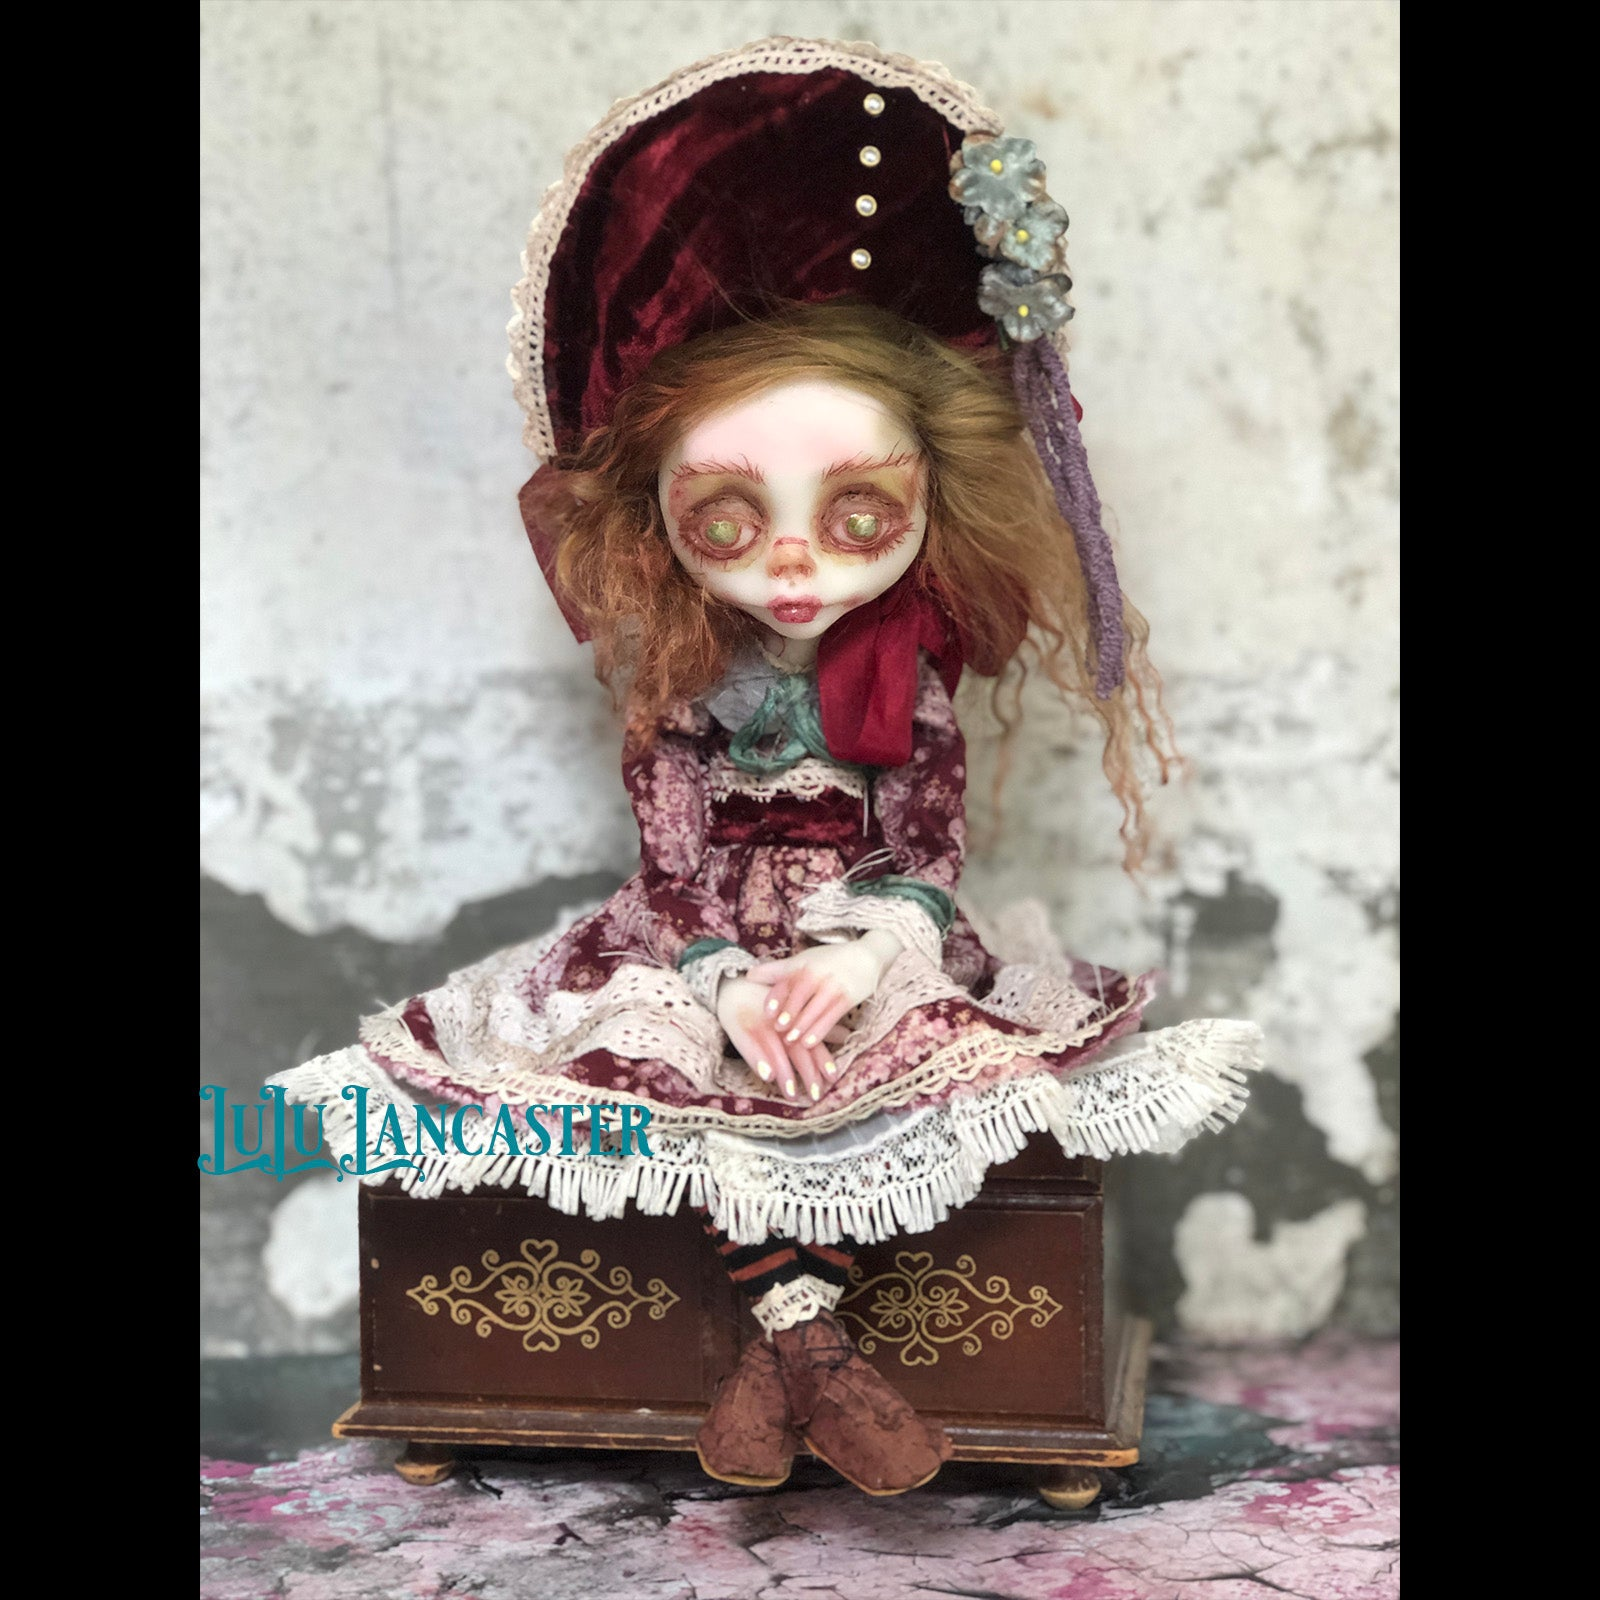 Ruthie Creepy sad sitter OOAK Art Doll LuLu Lancaster